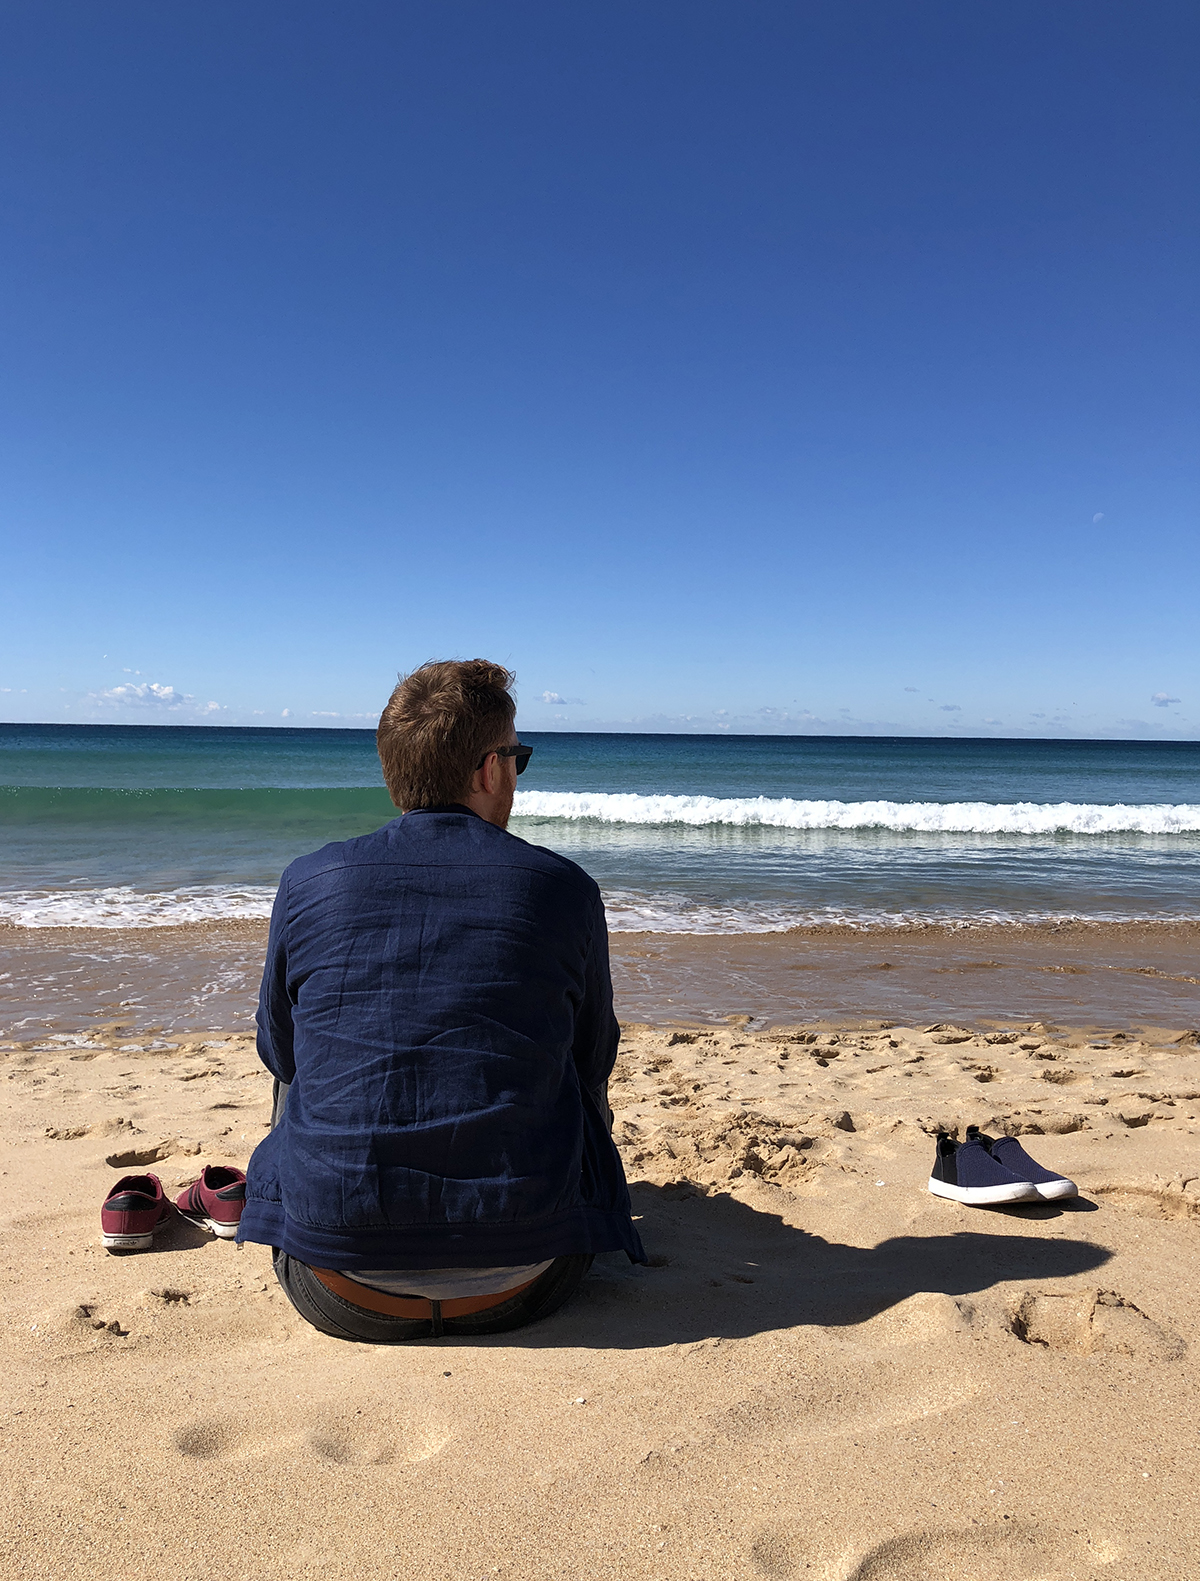 M looking out to sea at Manly